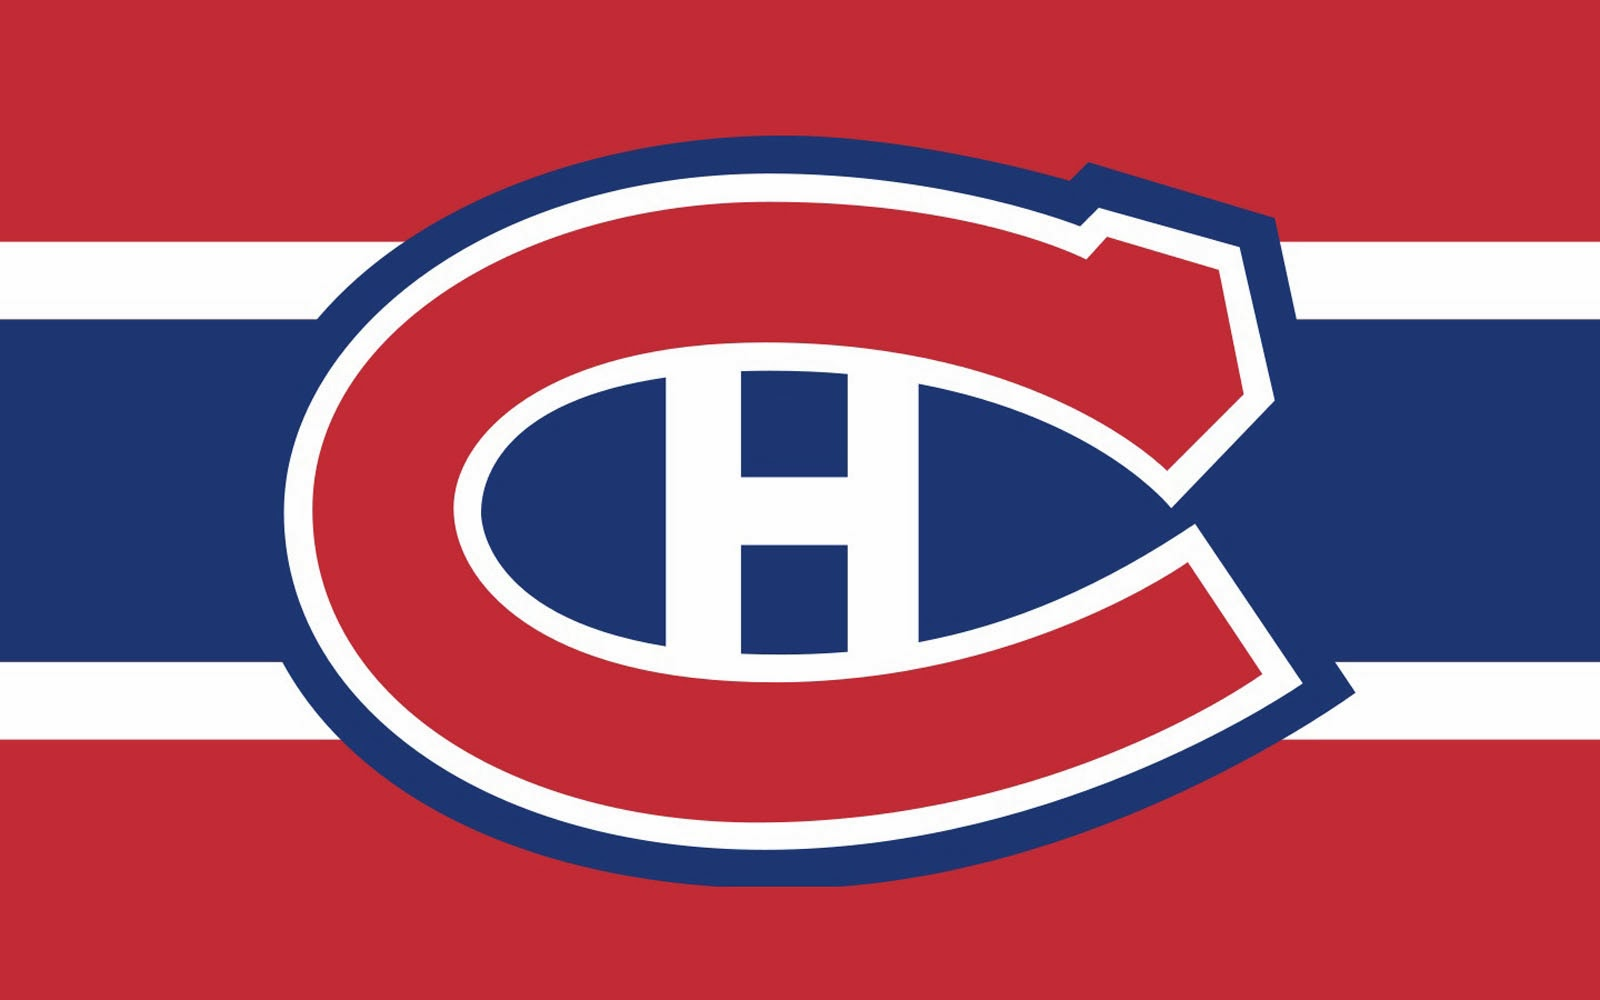 the Montreal Canadiens Wallpapers in the category of Sports Wallpapers 1600x1000